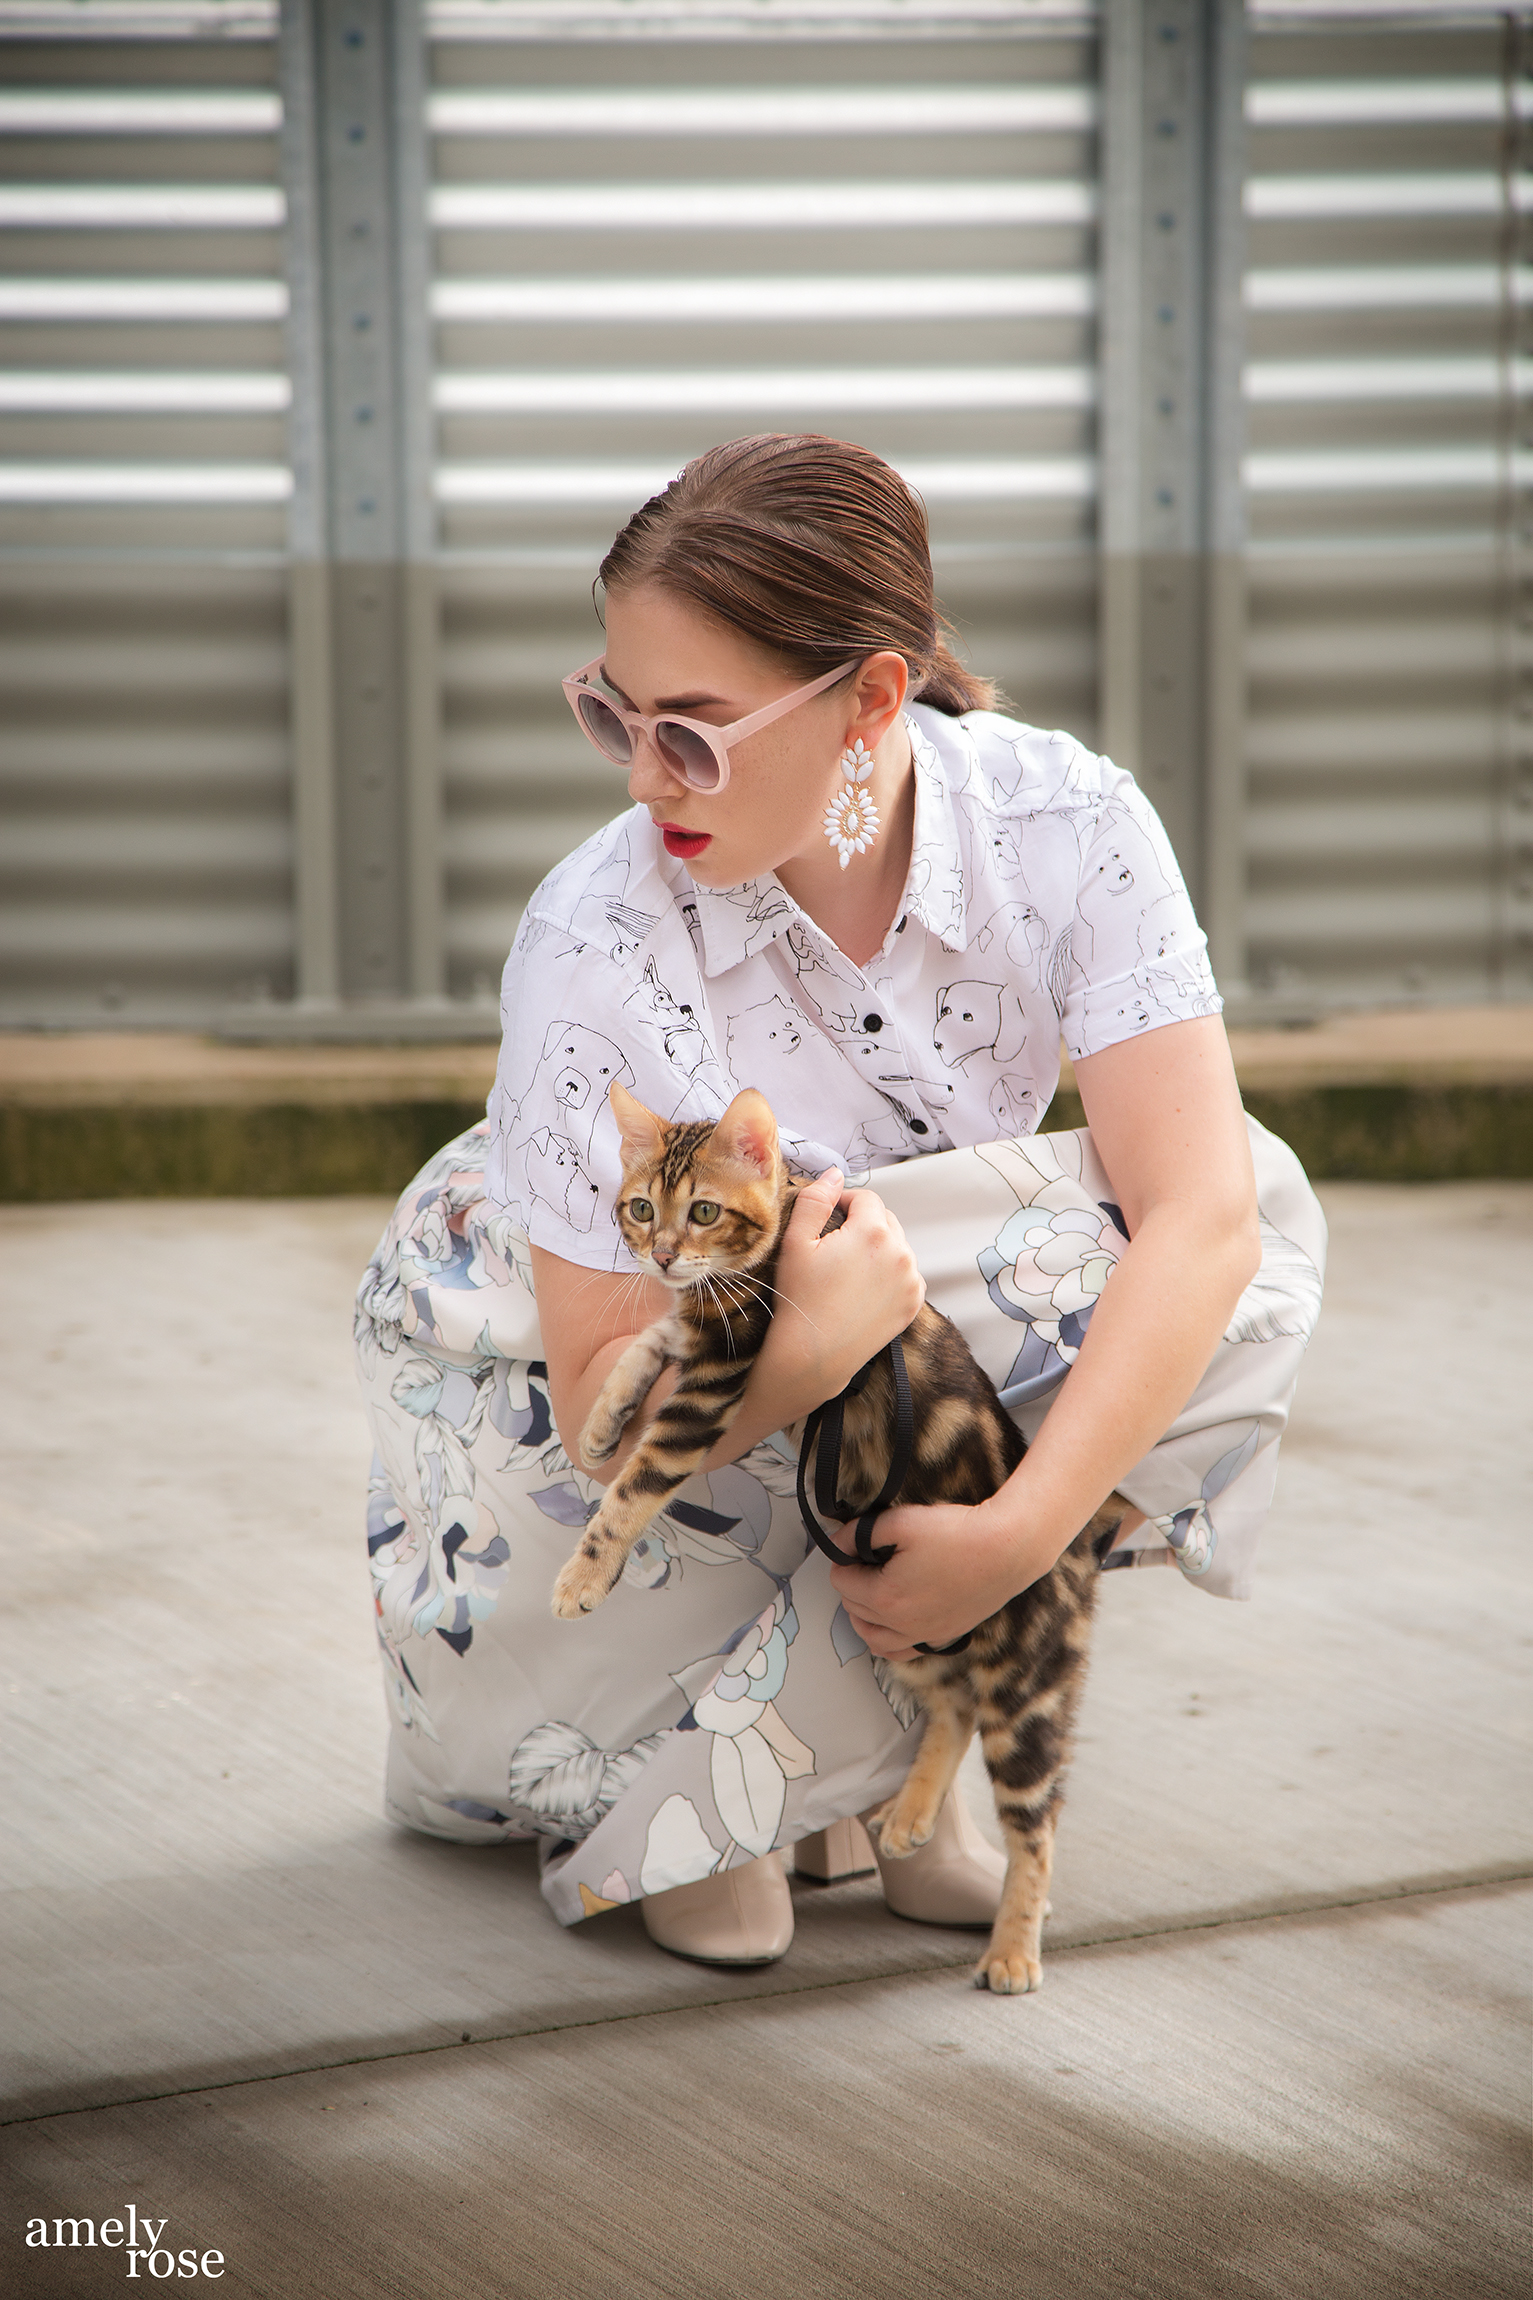 amelyrose_amely_rose_catwalk_bengal_catcontent_adventurecat_kitten_bengalcat_fashion_influencer_katze_cat